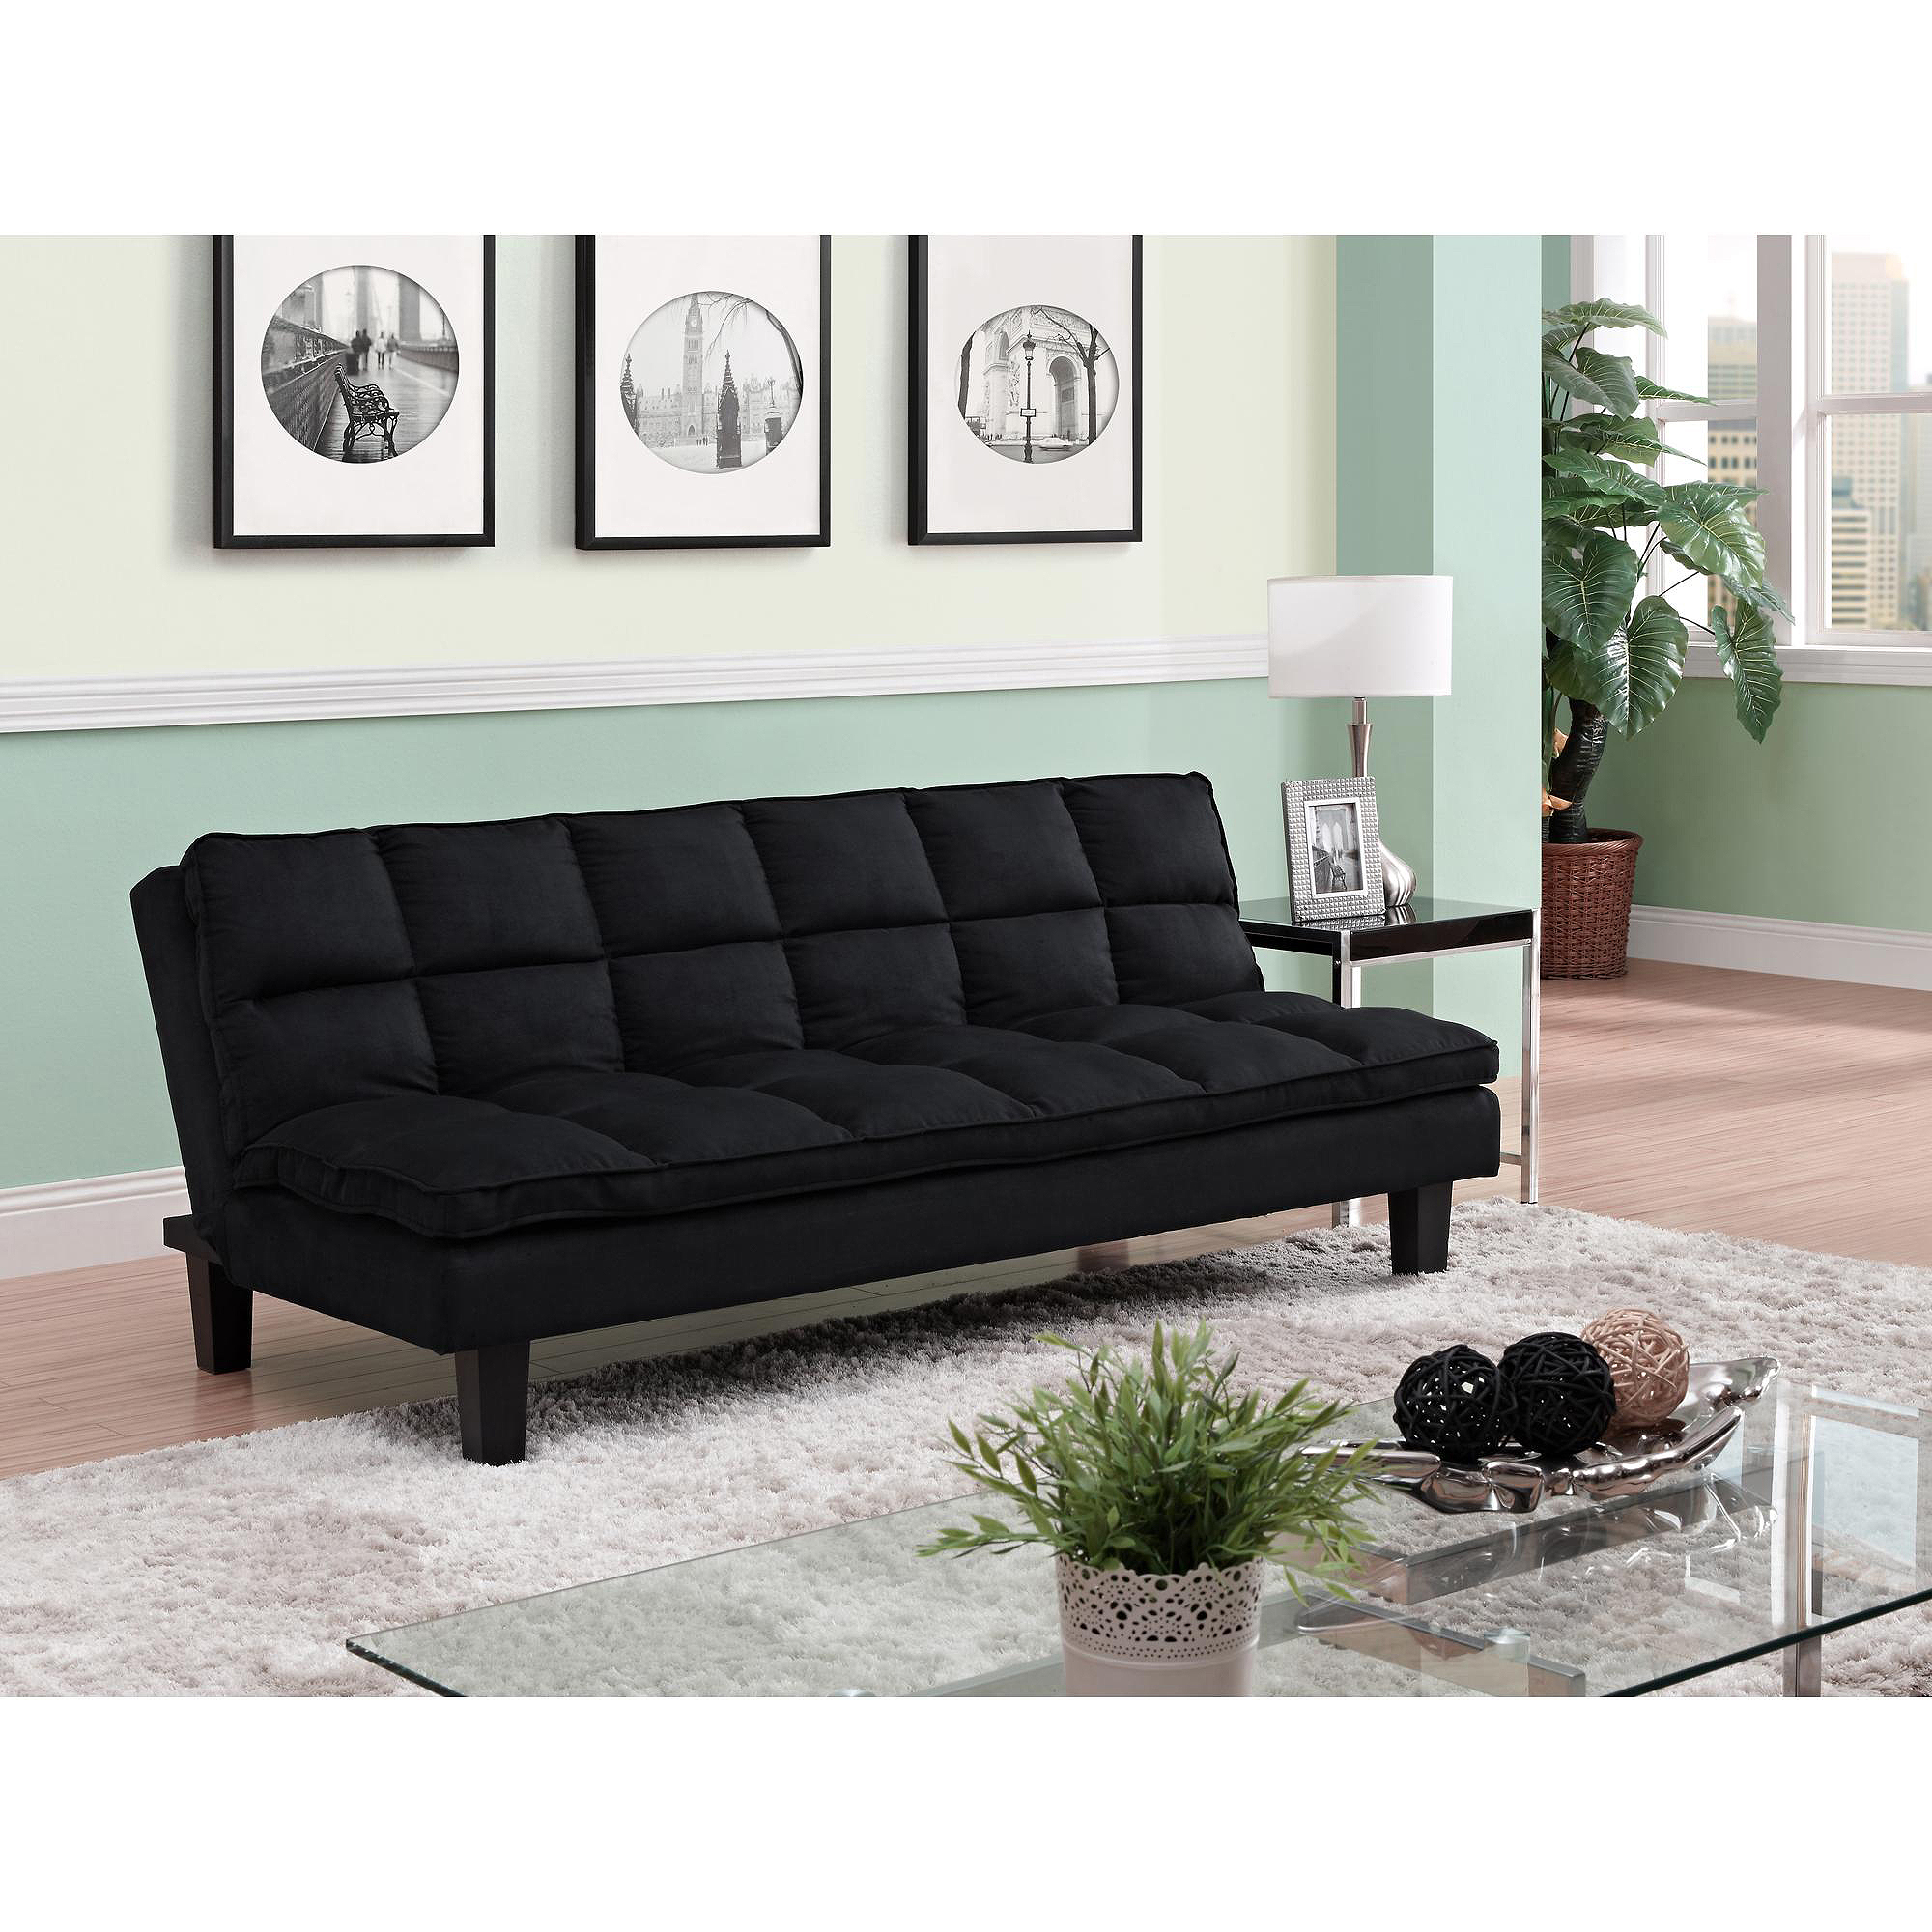 cheap futon sale idea bunk furniture at out b size sofa futons couch storage with home target best walmart mattress pull buy queen rug tulsa bed for